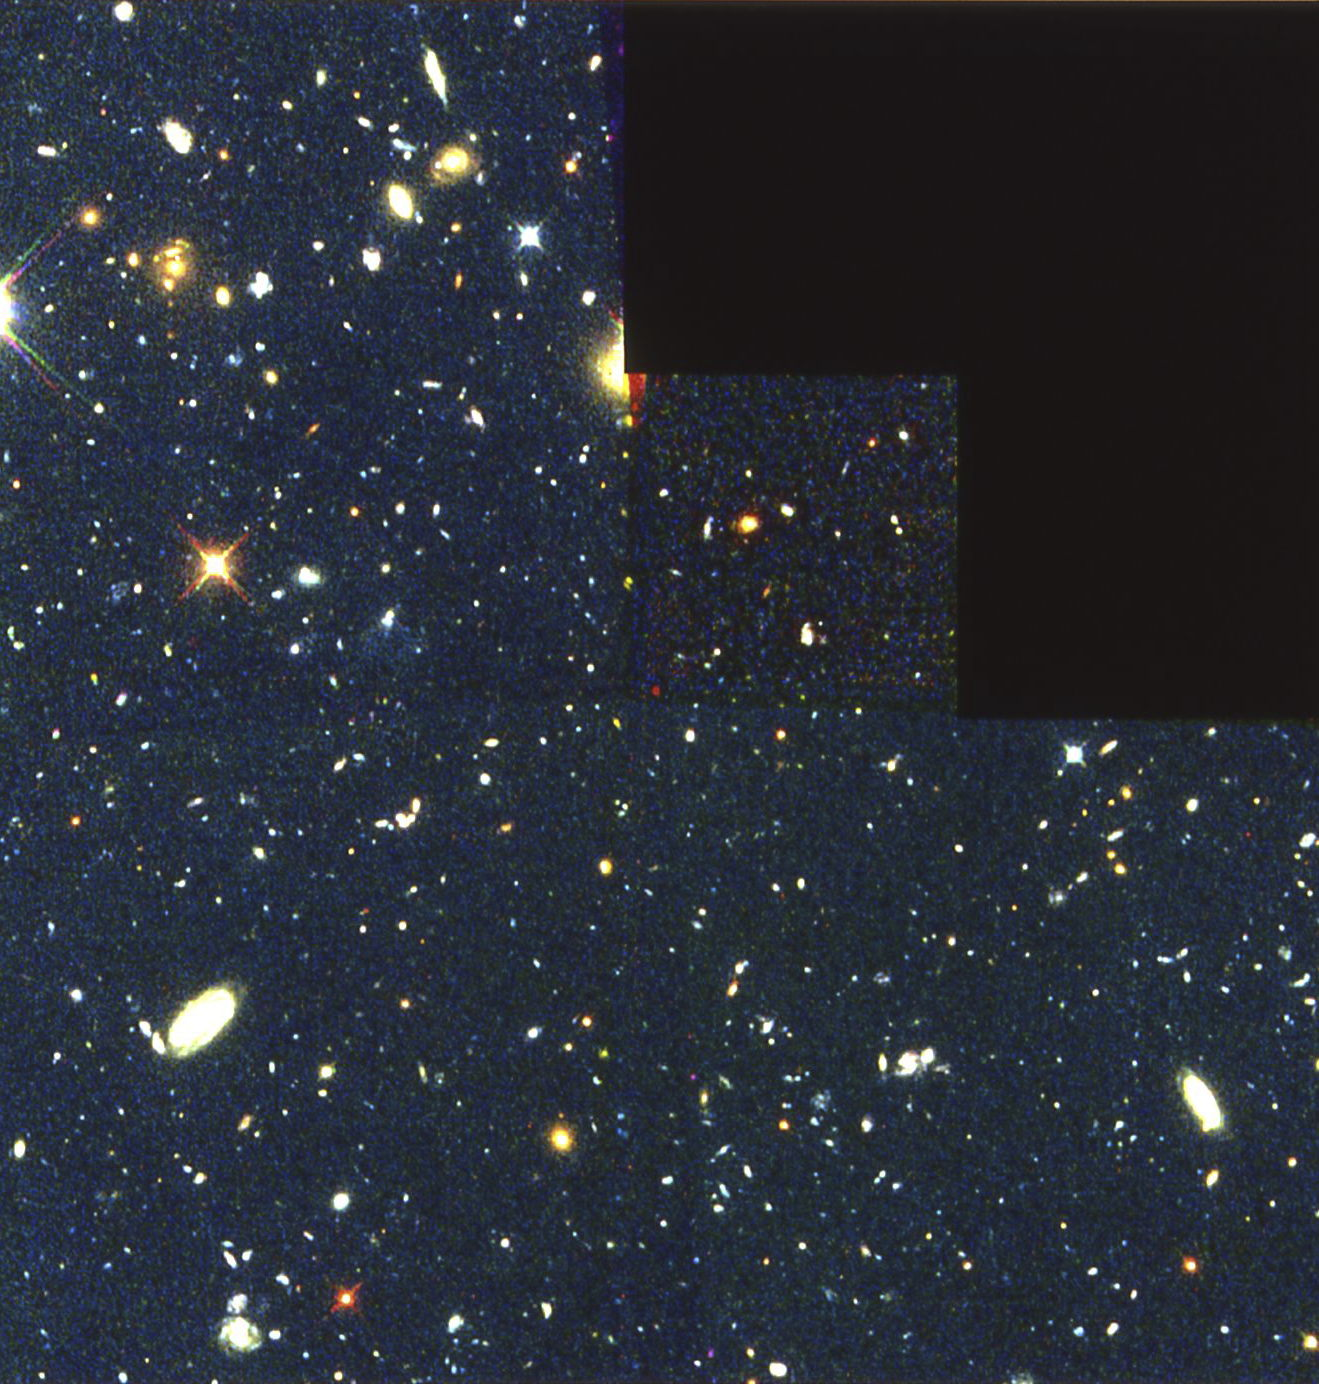 "The Birth of Galaxies. This montage of pictures taken by the Hubble Space Telescope in 1996 shows what could be the ""building blocks"" of galaxies in the infant universe: a group of 18 giant star clusters, each approximately 2,000 light-years in diameter, close enough together (about two million light-years) to fuse into a single structure the size of a galaxy. Approximately 11 billion light-years away from us, they belong to the period when the first galaxies are believed to have formed. This image therefore supports the theory that galaxies were formed by the amalgamation of star clusters rather than by the fragmentation of some vast proto-galactic cloud."